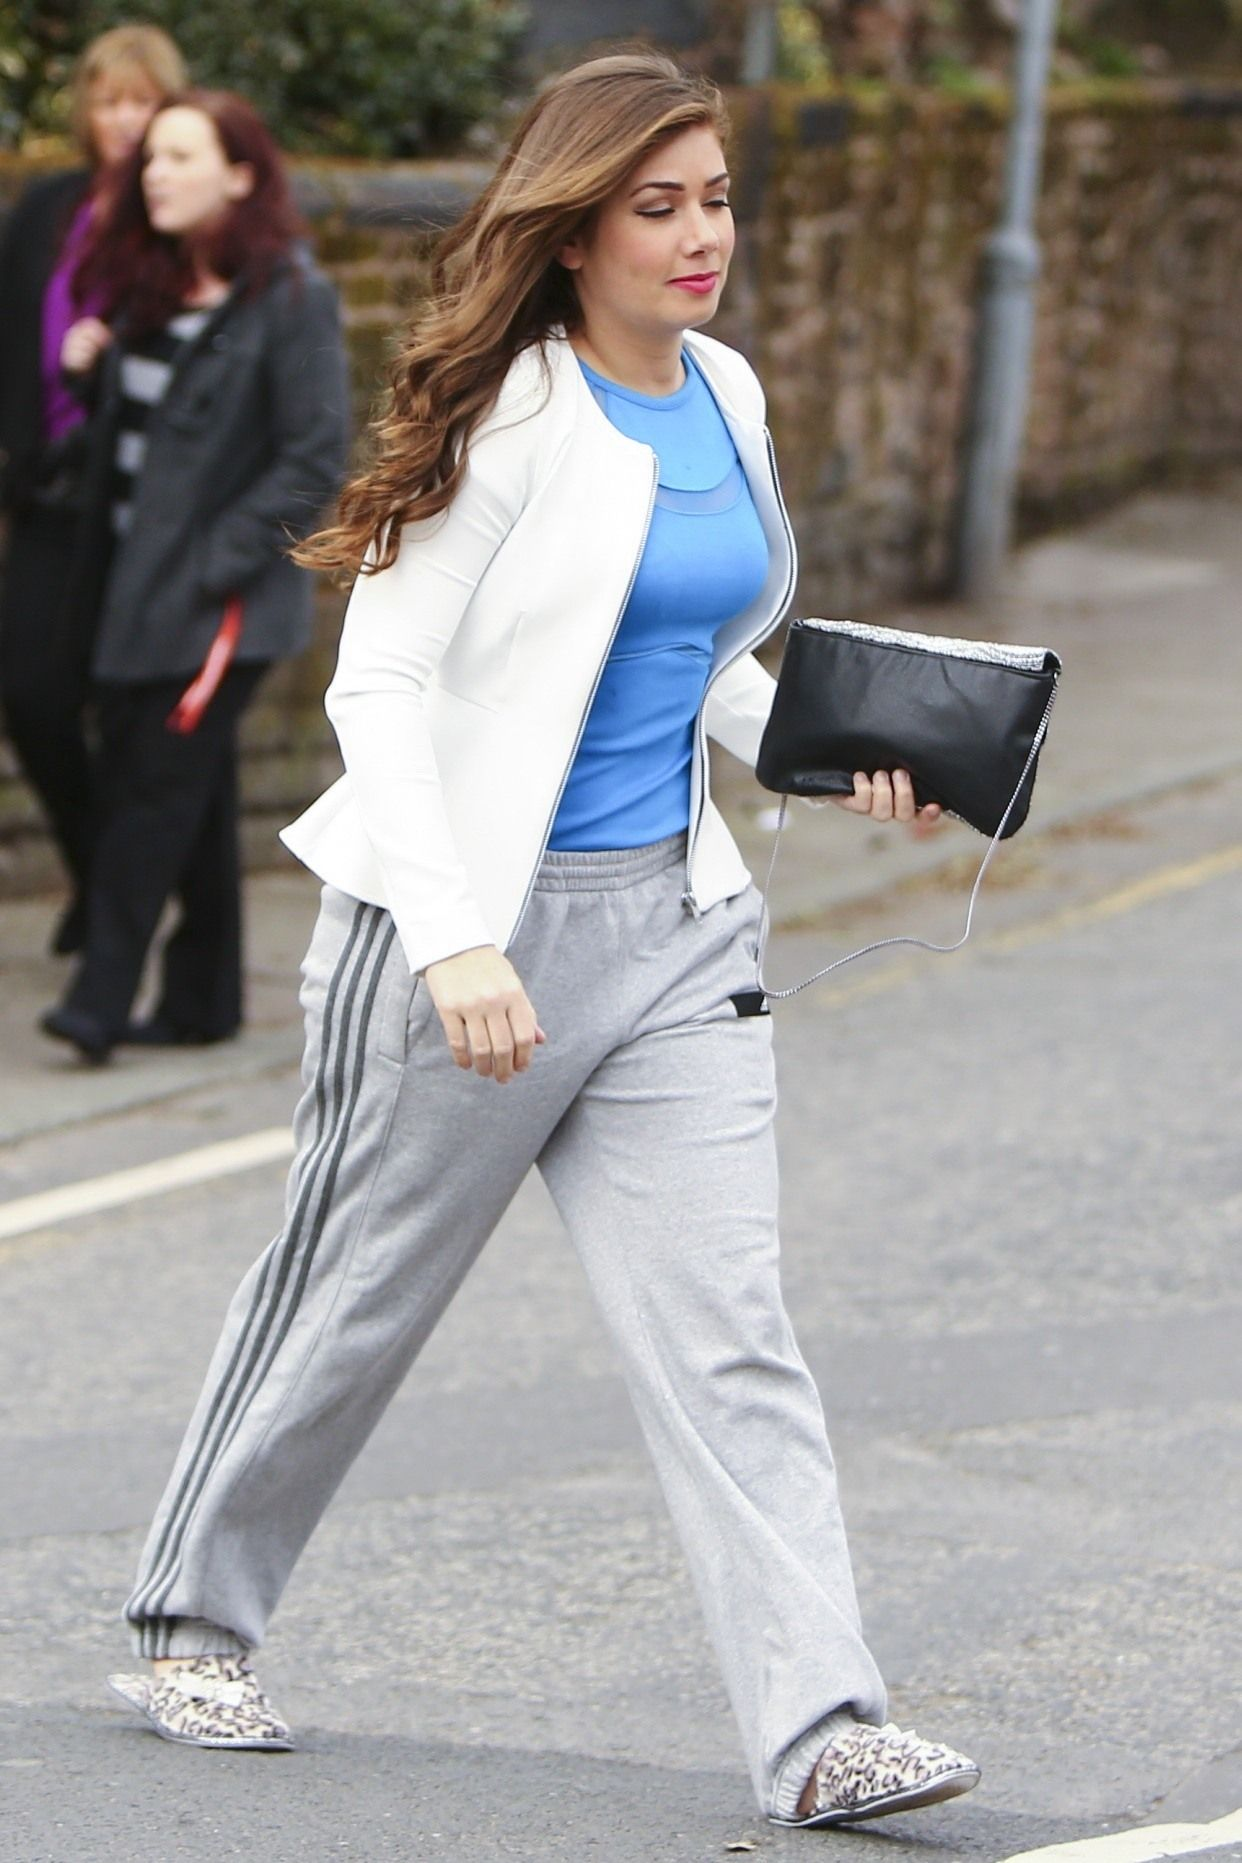 Nikki Sanderson Filming Hollyoaks in Liverpool